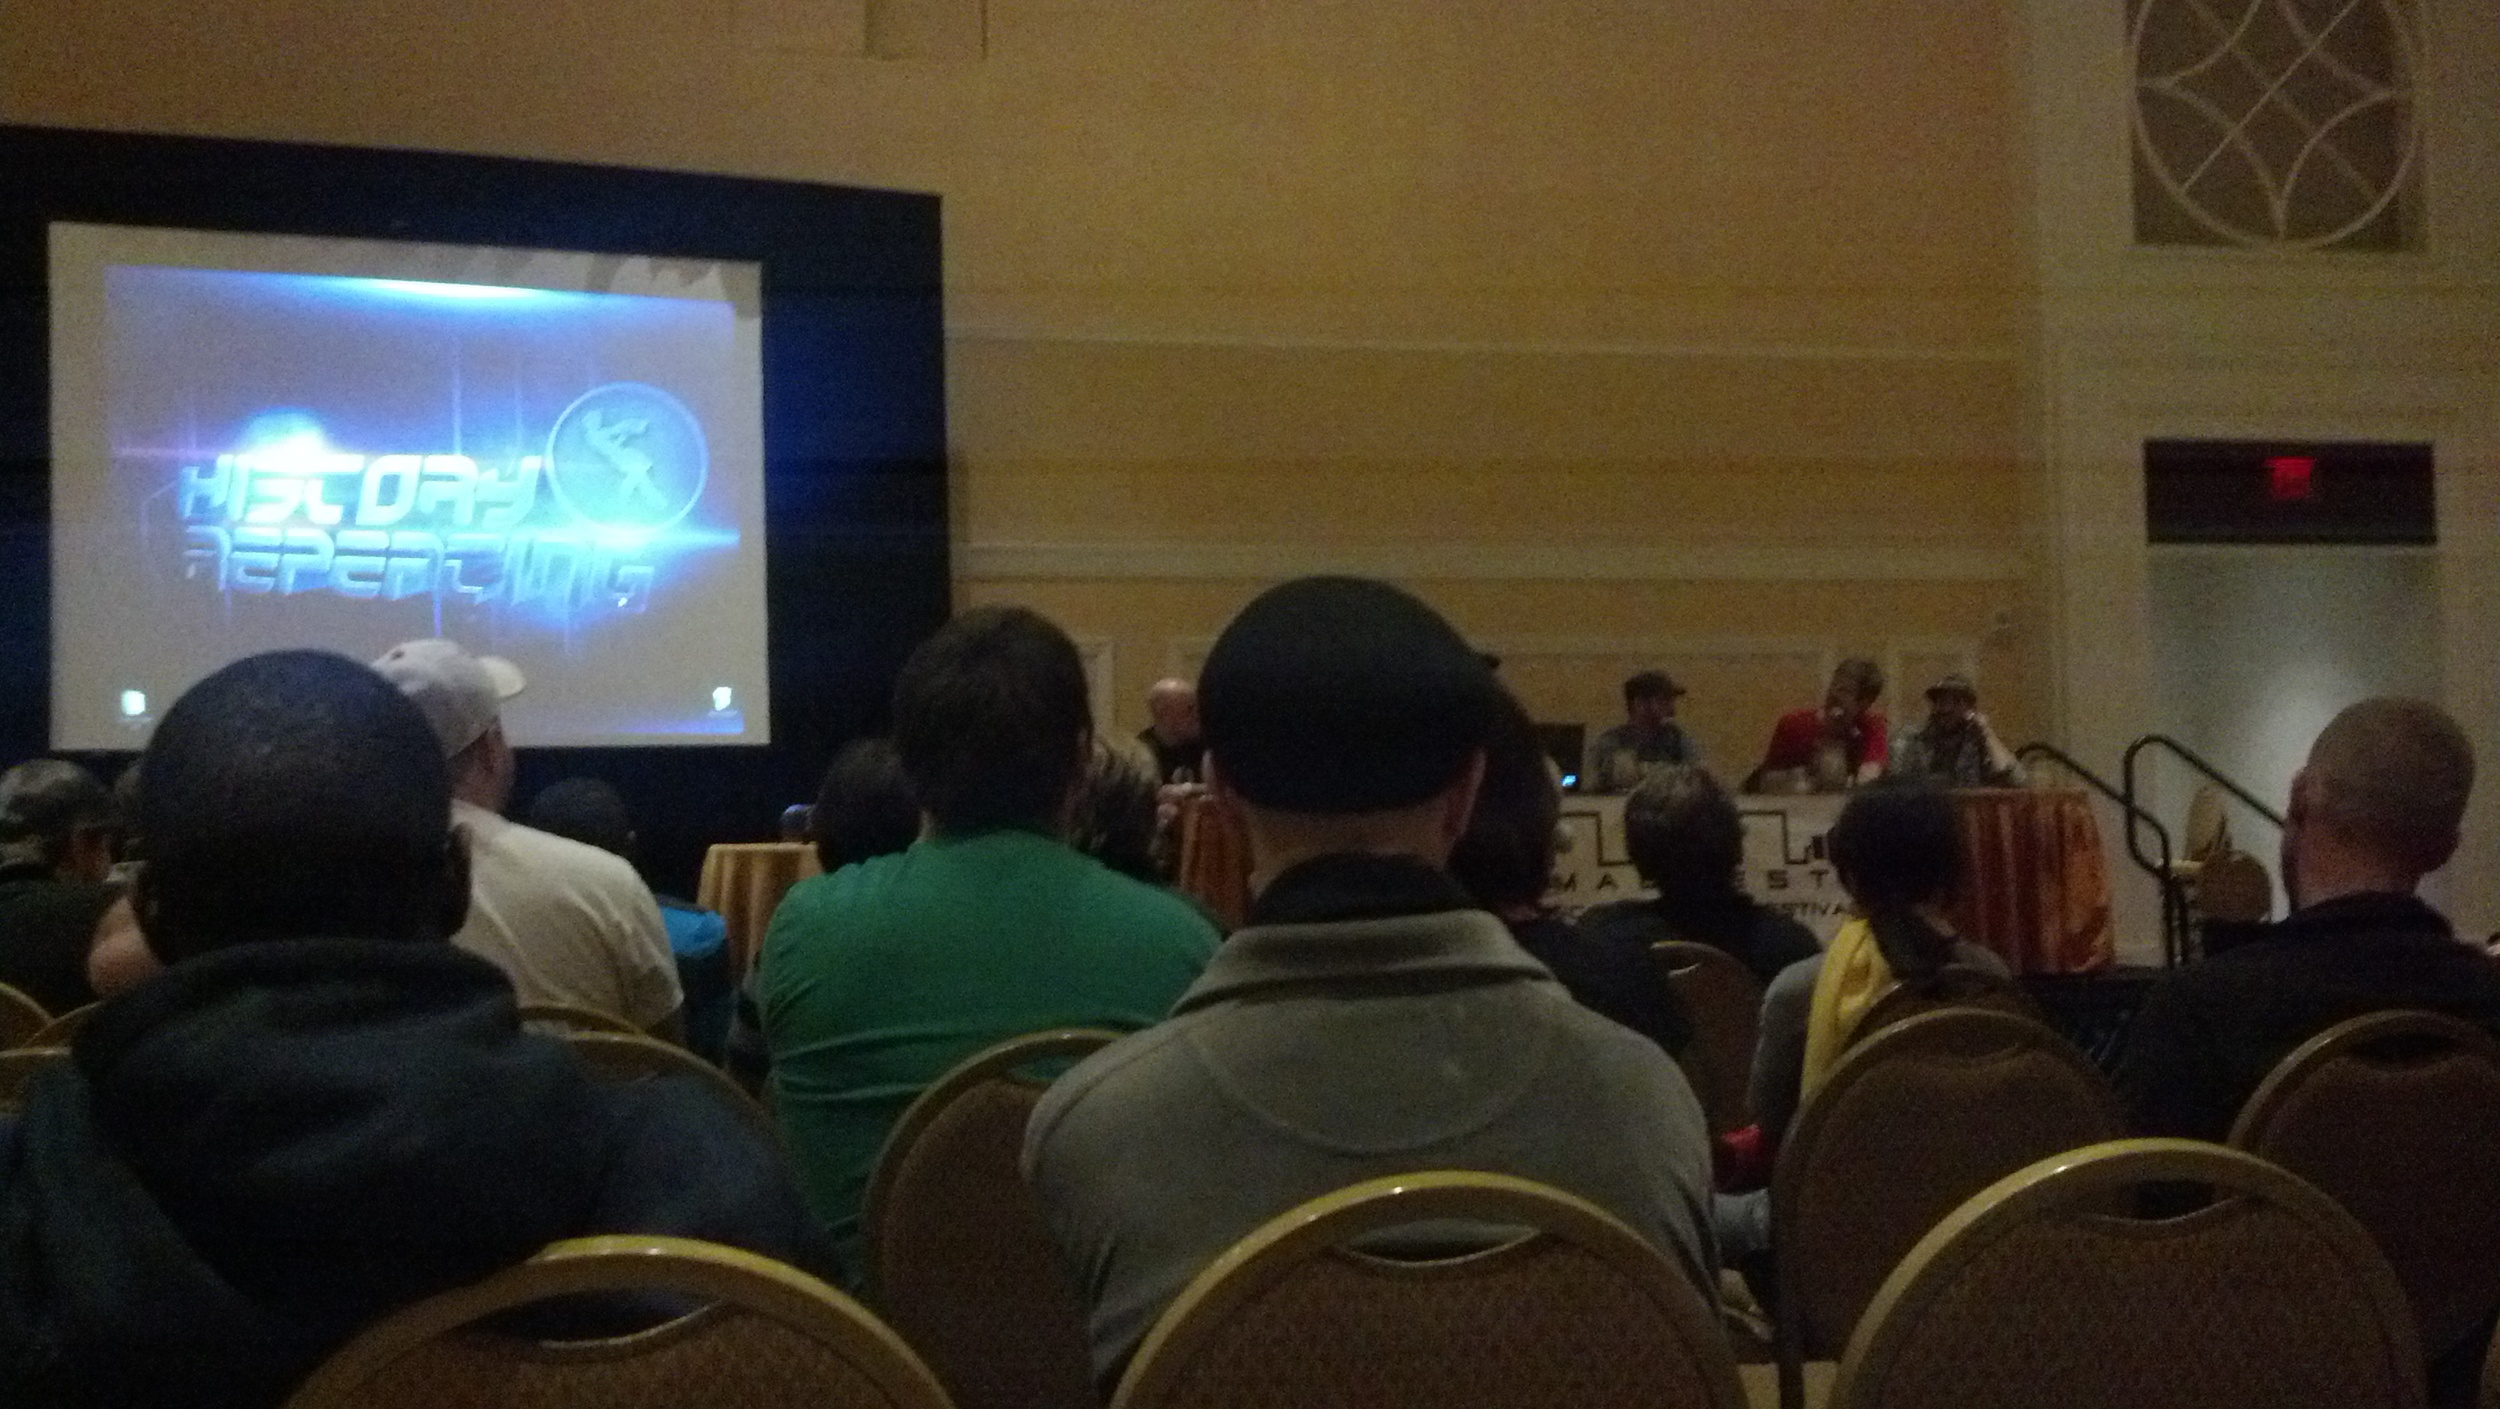 The Megas, with Bentelfloss hosting their QnA panel.